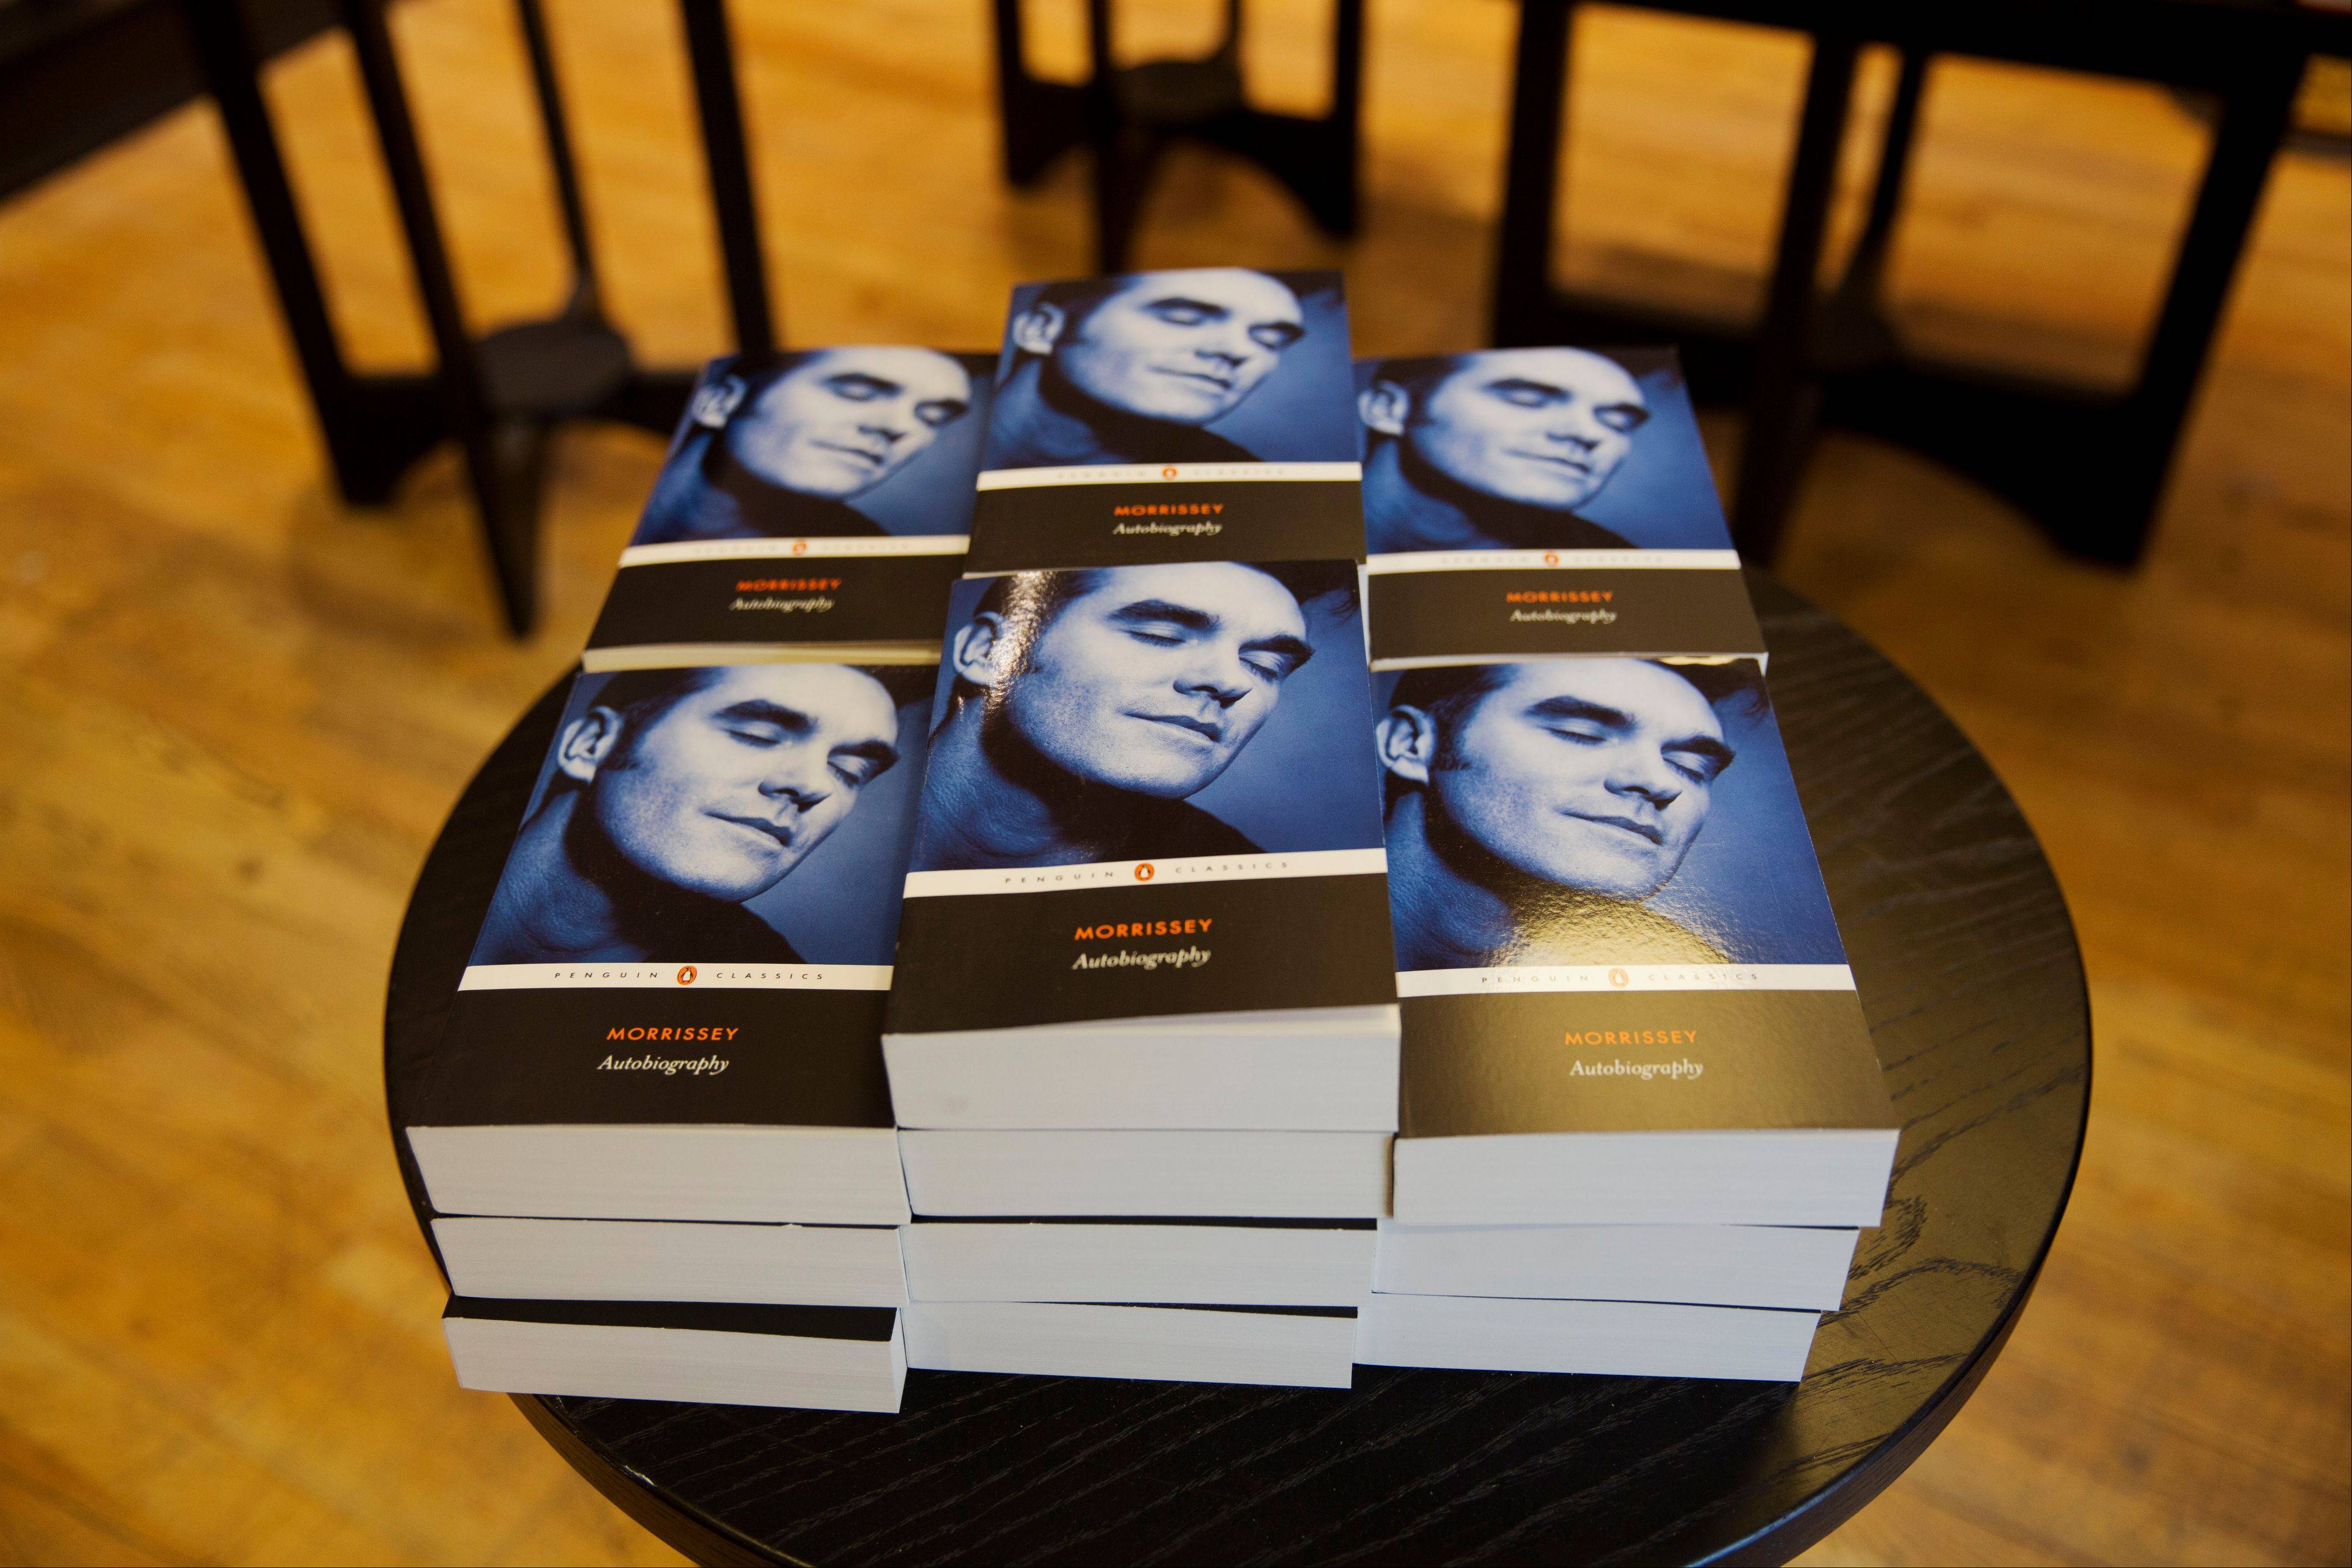 Copies of the Morrissey �Autobiography� lie stacked up on display at a branch of a bookstore in north London. The memoir from the former frontman of The Smiths � titled simply �Autobiography� � is the first rock bio published under the venerable Penguin Classics imprint, home to Aeschylus, Jane Austen and Oscar Wilde. That has horrified some people in the publishing industry, but not the singer�s many fans, who snapped up the book as soon as it was published Thursday.